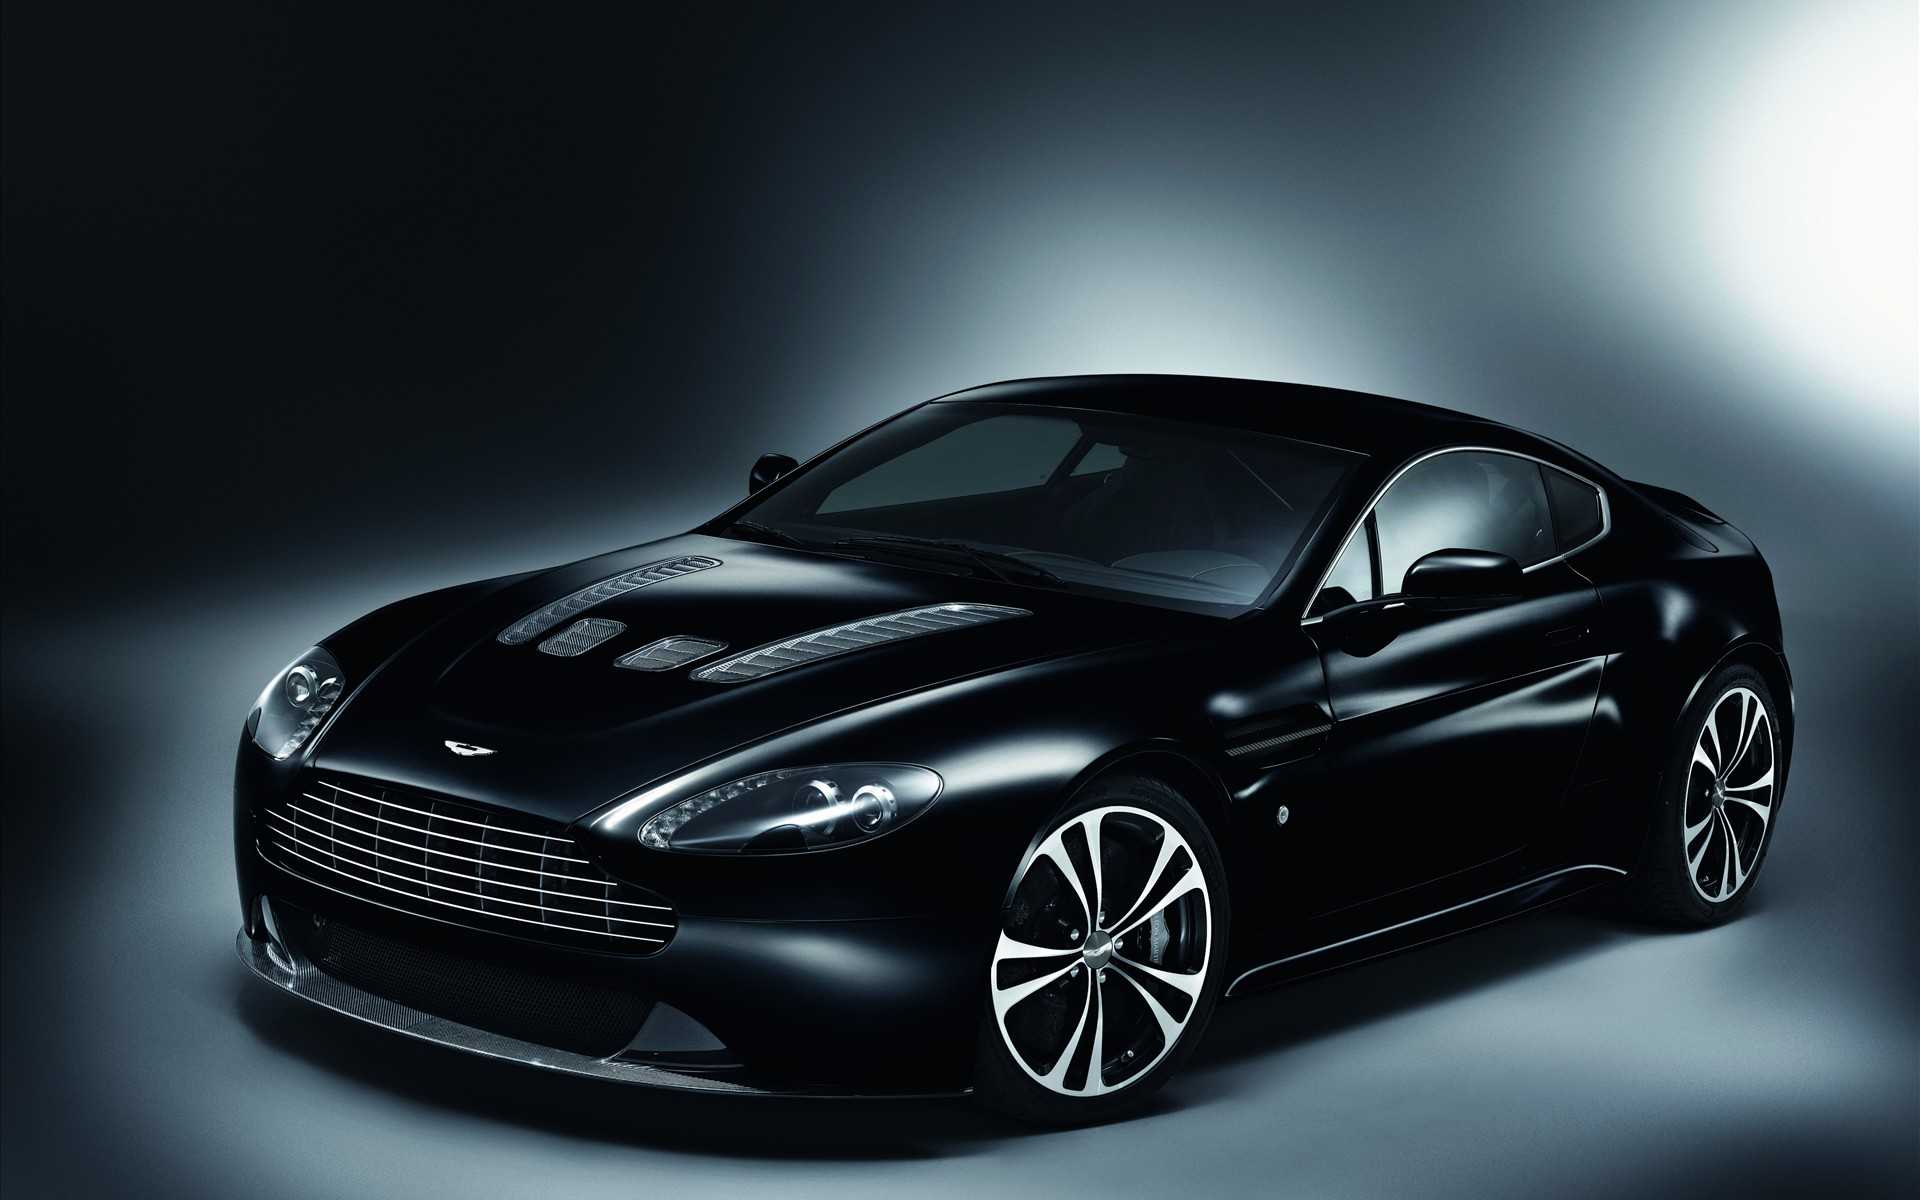 Aston Martin Carbon Black Special Editions Wallpapers HD Wallpapers 1920x1200